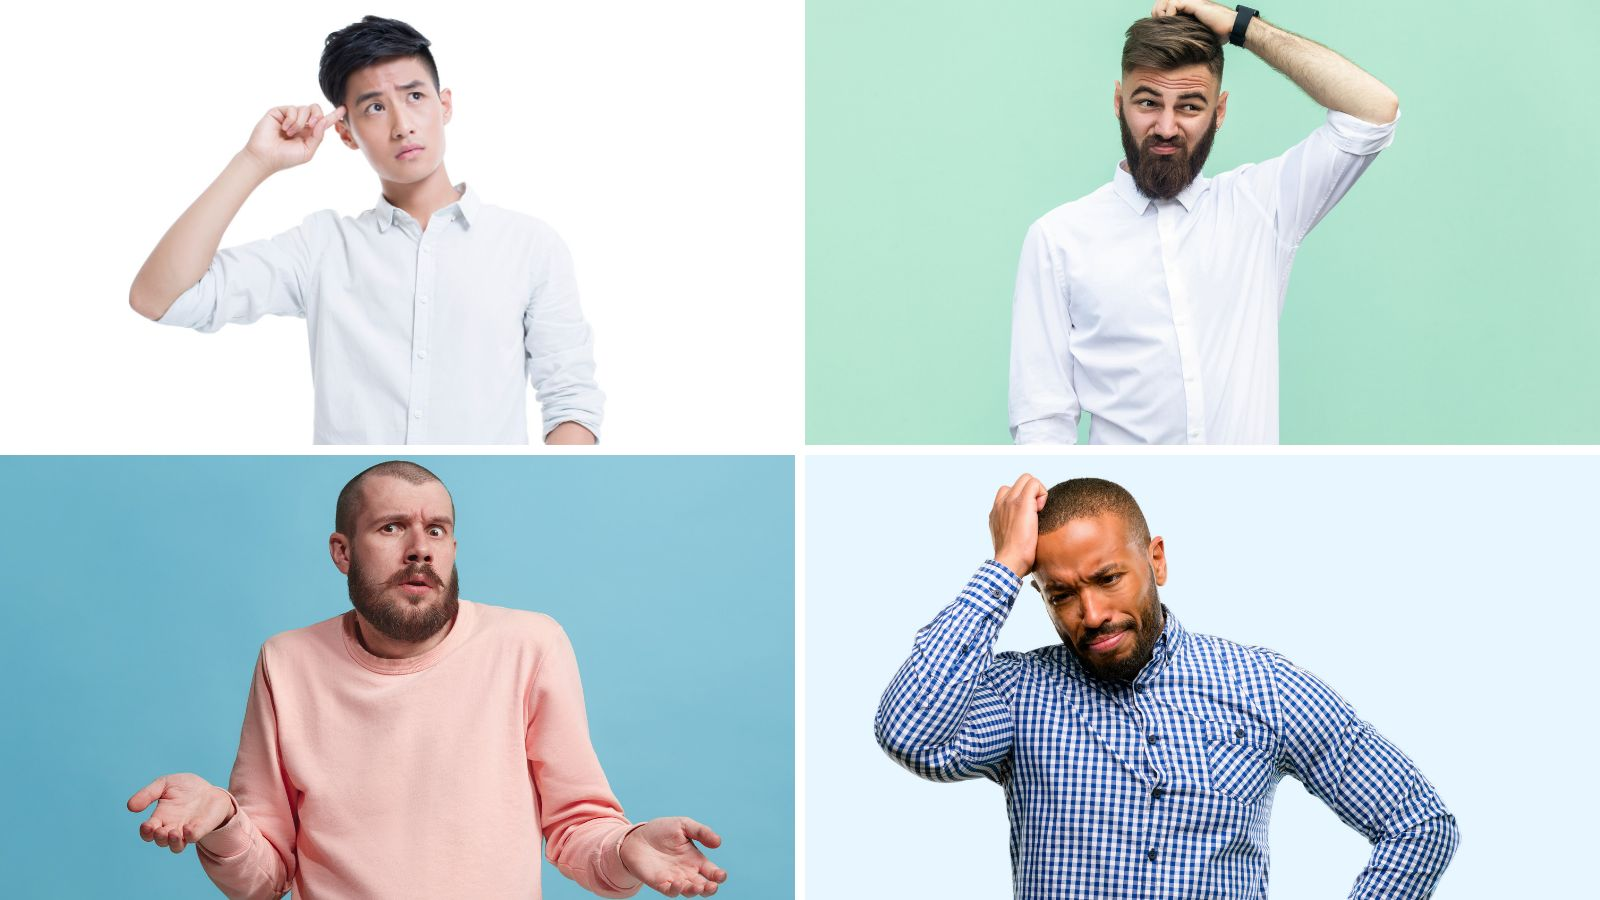 A four-way split image of four different confused men.